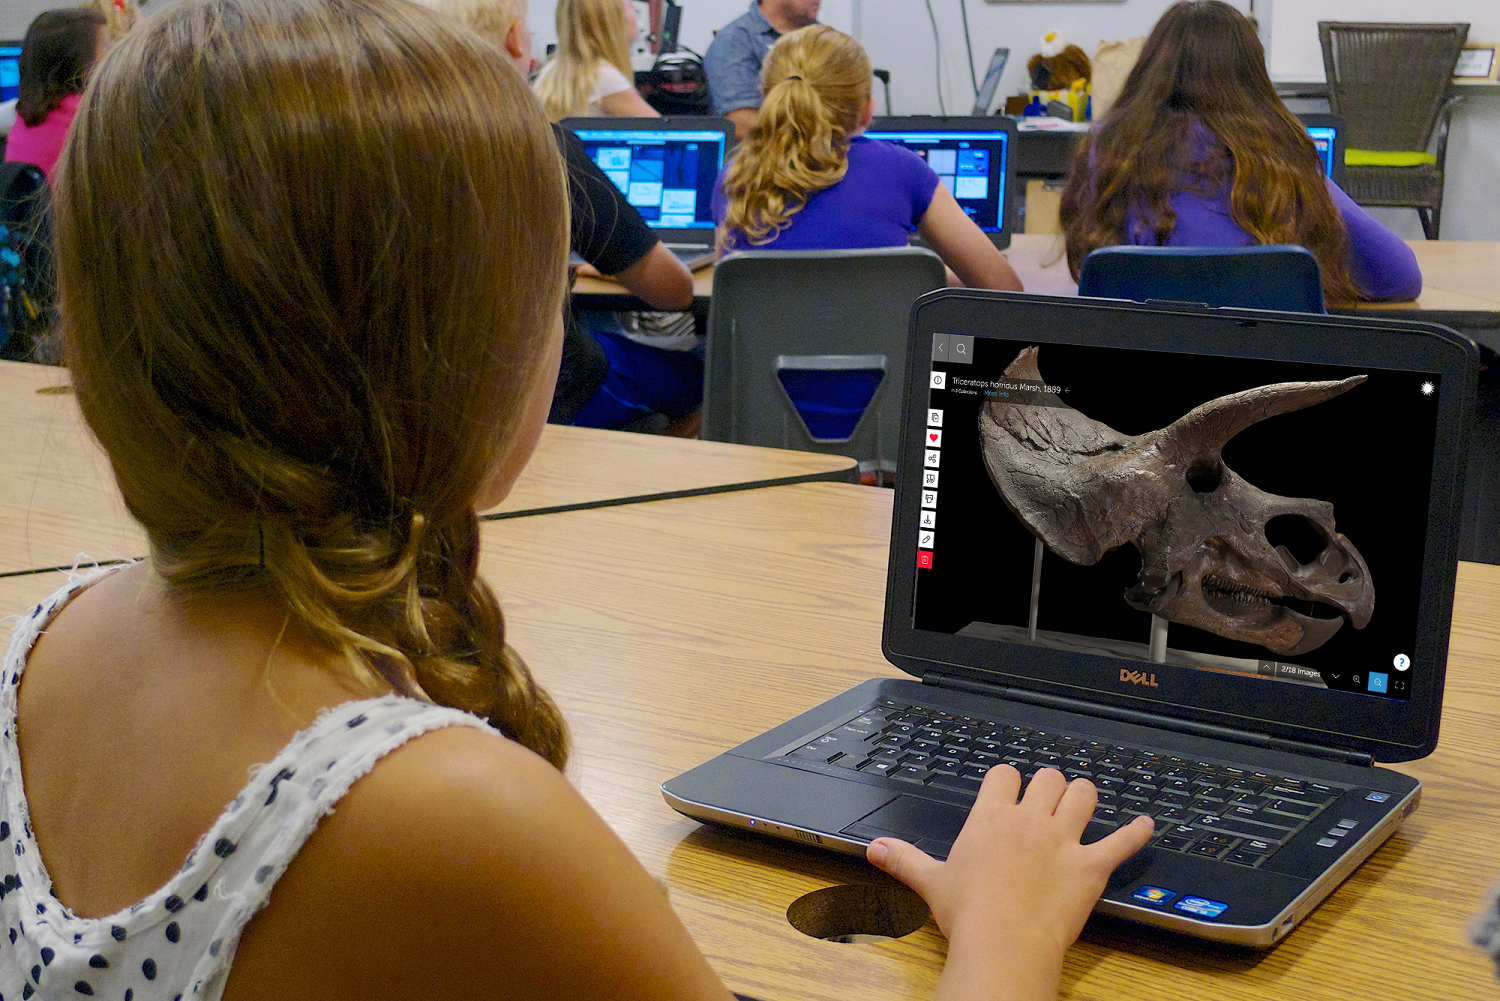 A young woman sits at a long desk with a laptop computer open in front of her. She has her right hand on the track mouse and the screen shows the image of aTriceratops skull in 3D. The young woman has her hair in a side braid and she is wearing a flowered tank top. The image is taken at an angle so you cannot see the young woman's face.